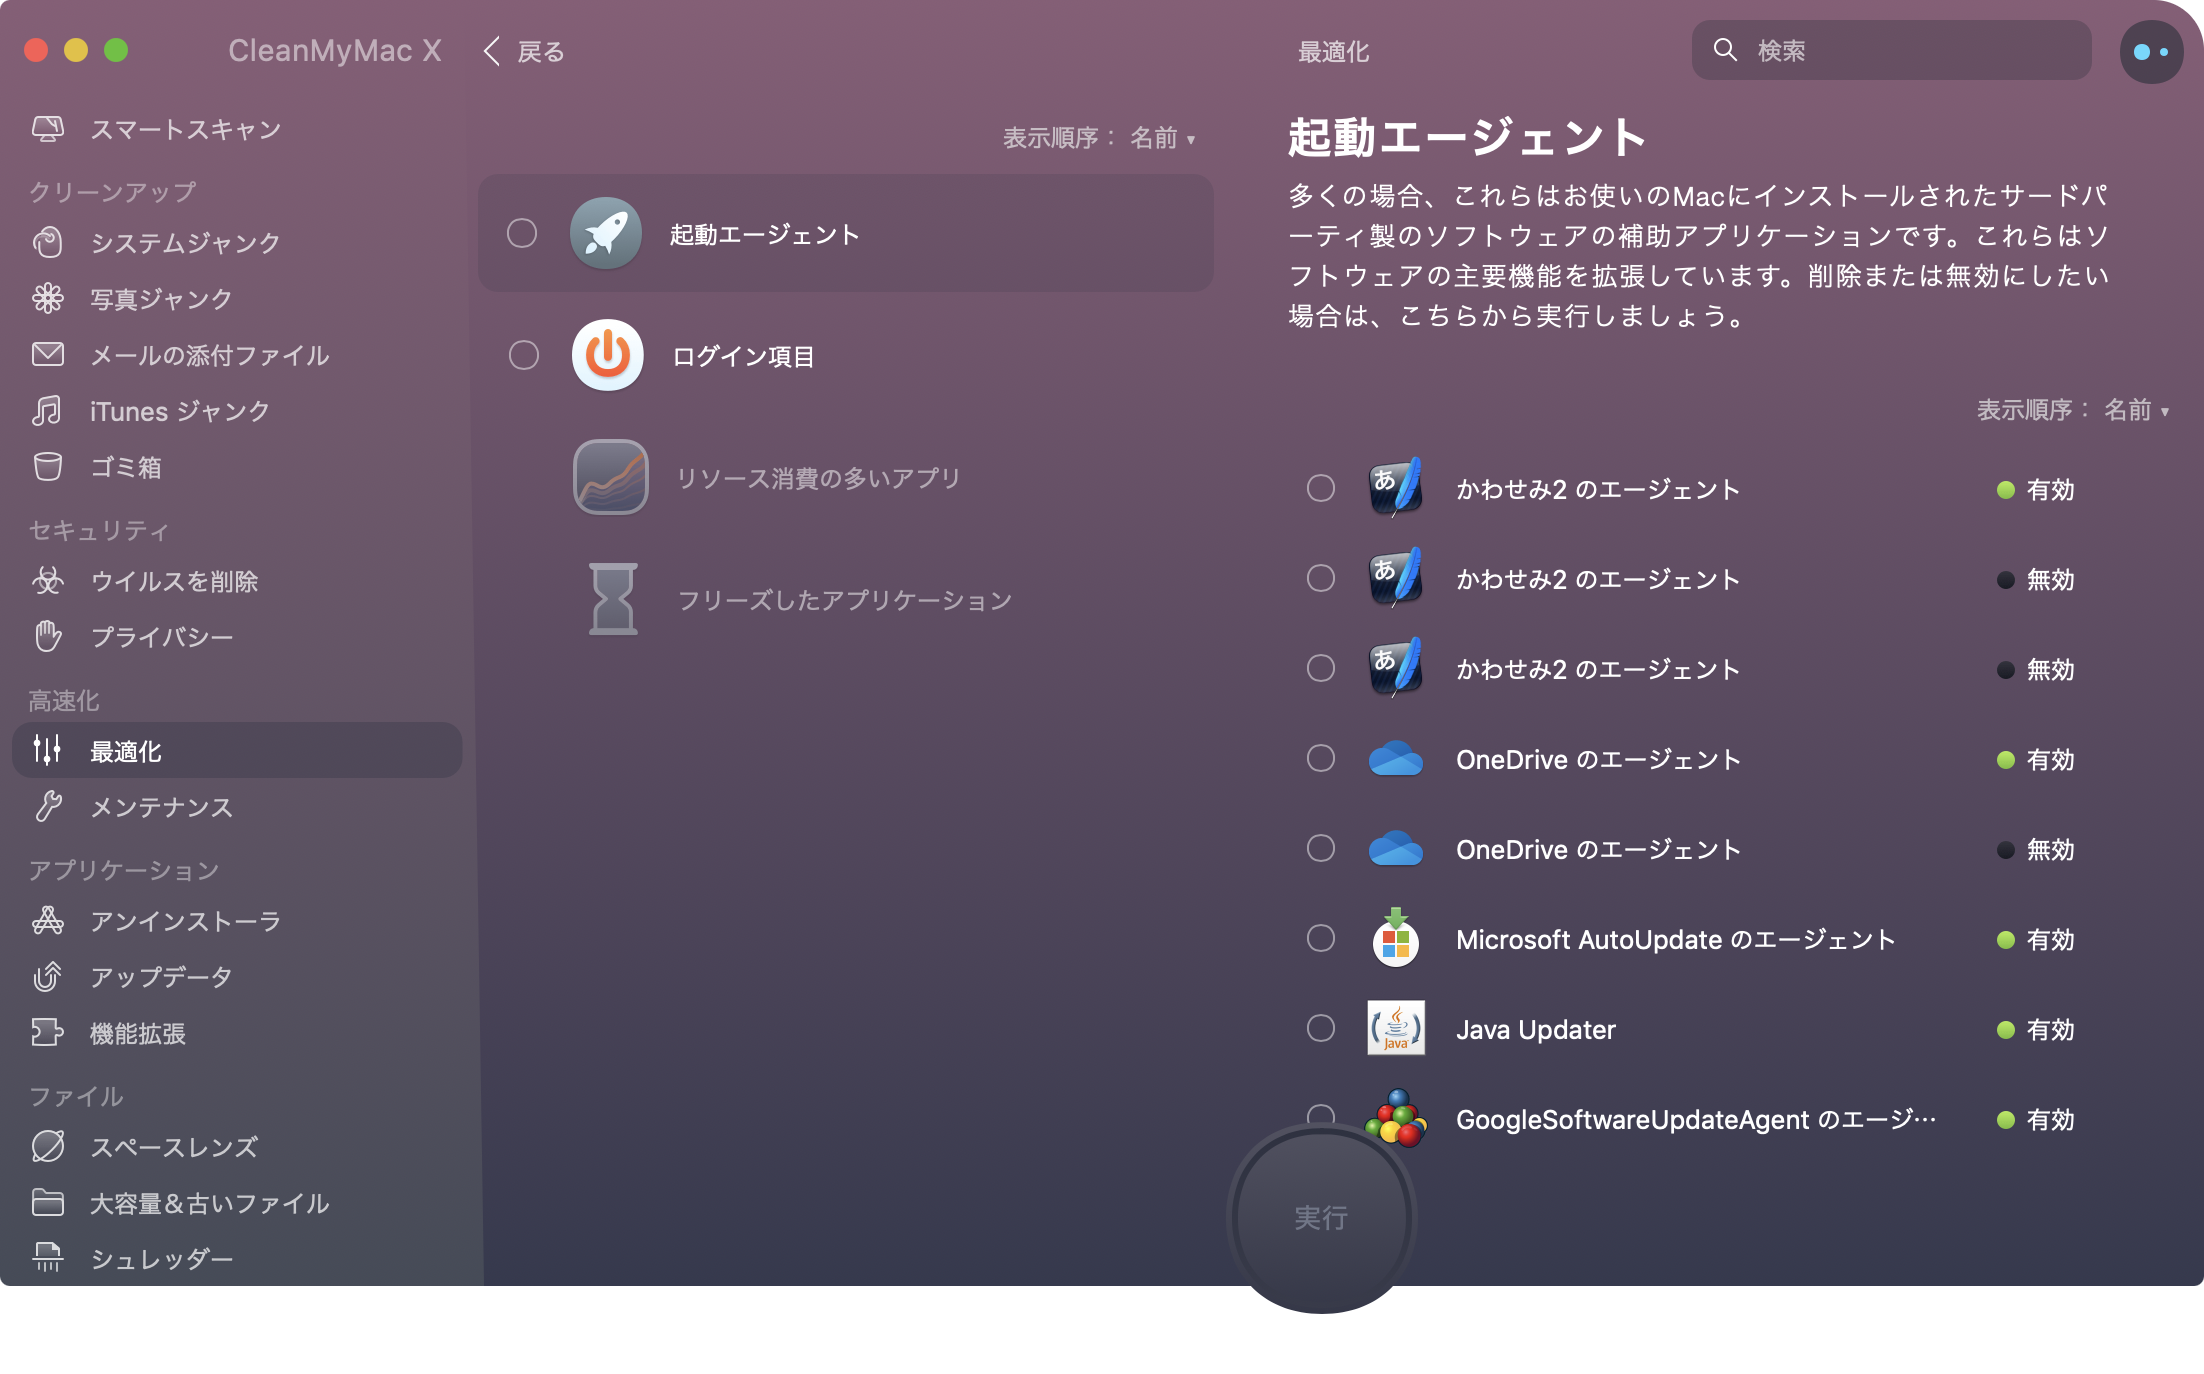 CleanMyMac 最適化